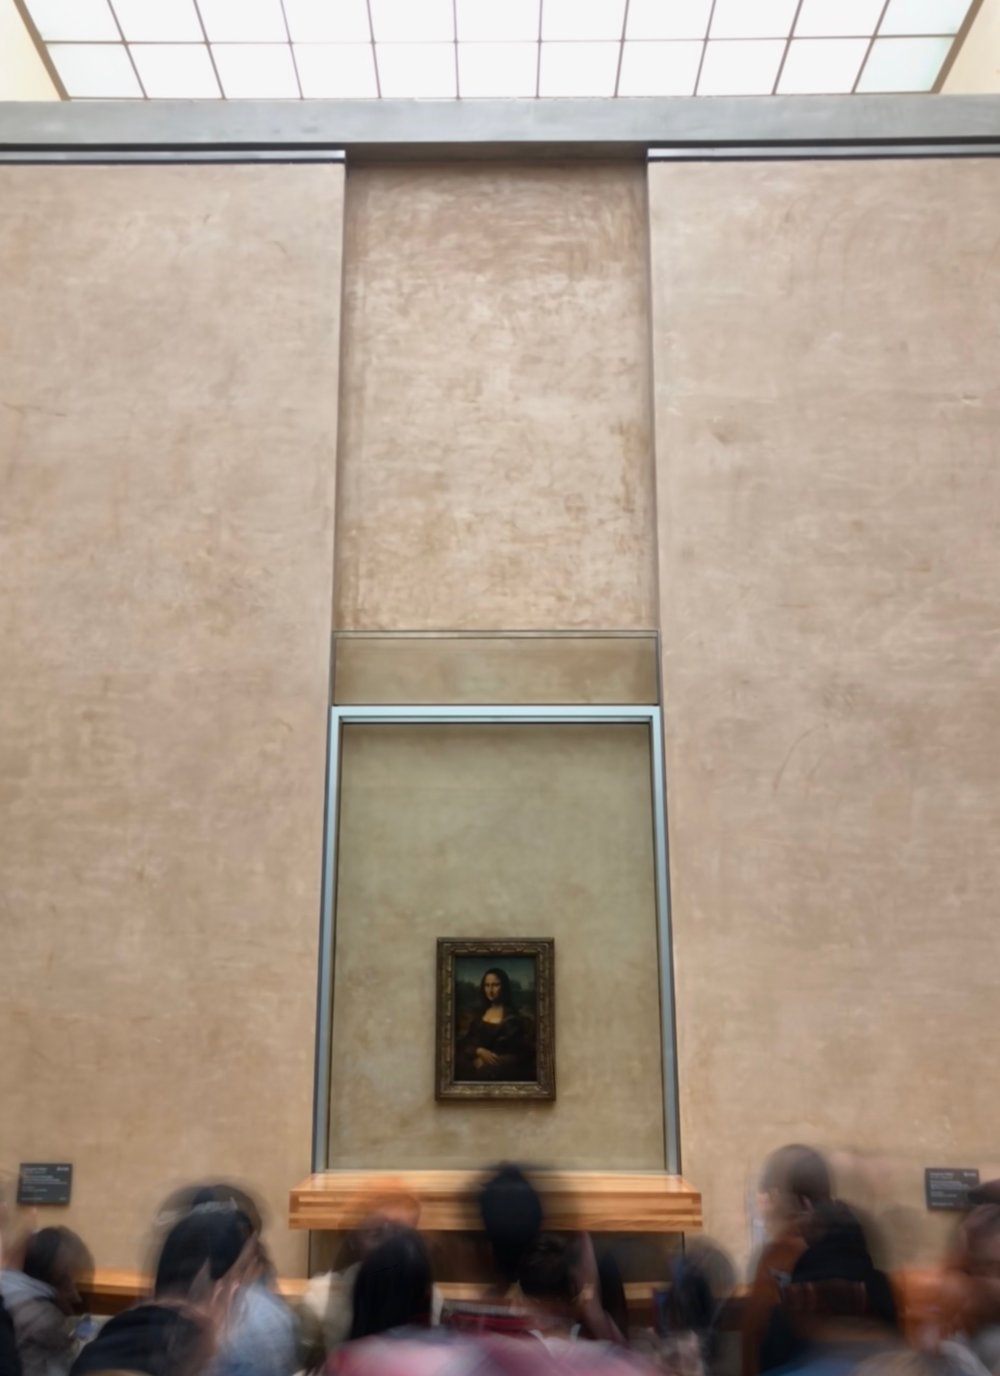 No matter when you visit, there will be a crowd around the Mona Lisa.